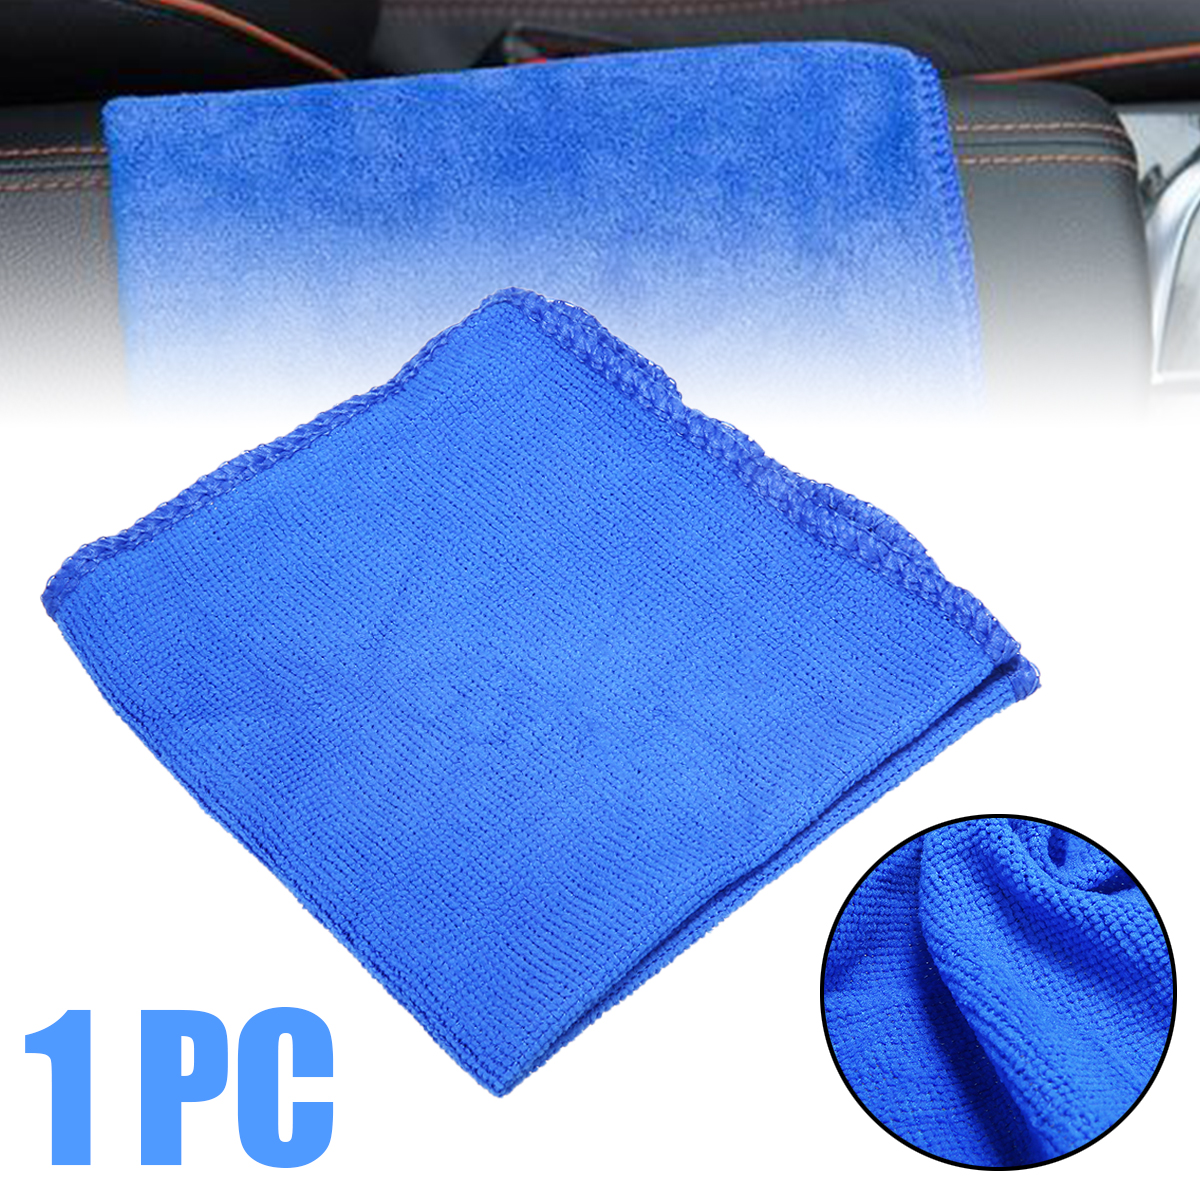 Image 2 - 1pc Car Soft Microfiber Car Care Cloths Absorbent Wash Cleaning Polish Towel Cloth 30*30cm Detailing Towels For Car Washing-in Sponges, Cloths & Brushes from Automobiles & Motorcycles